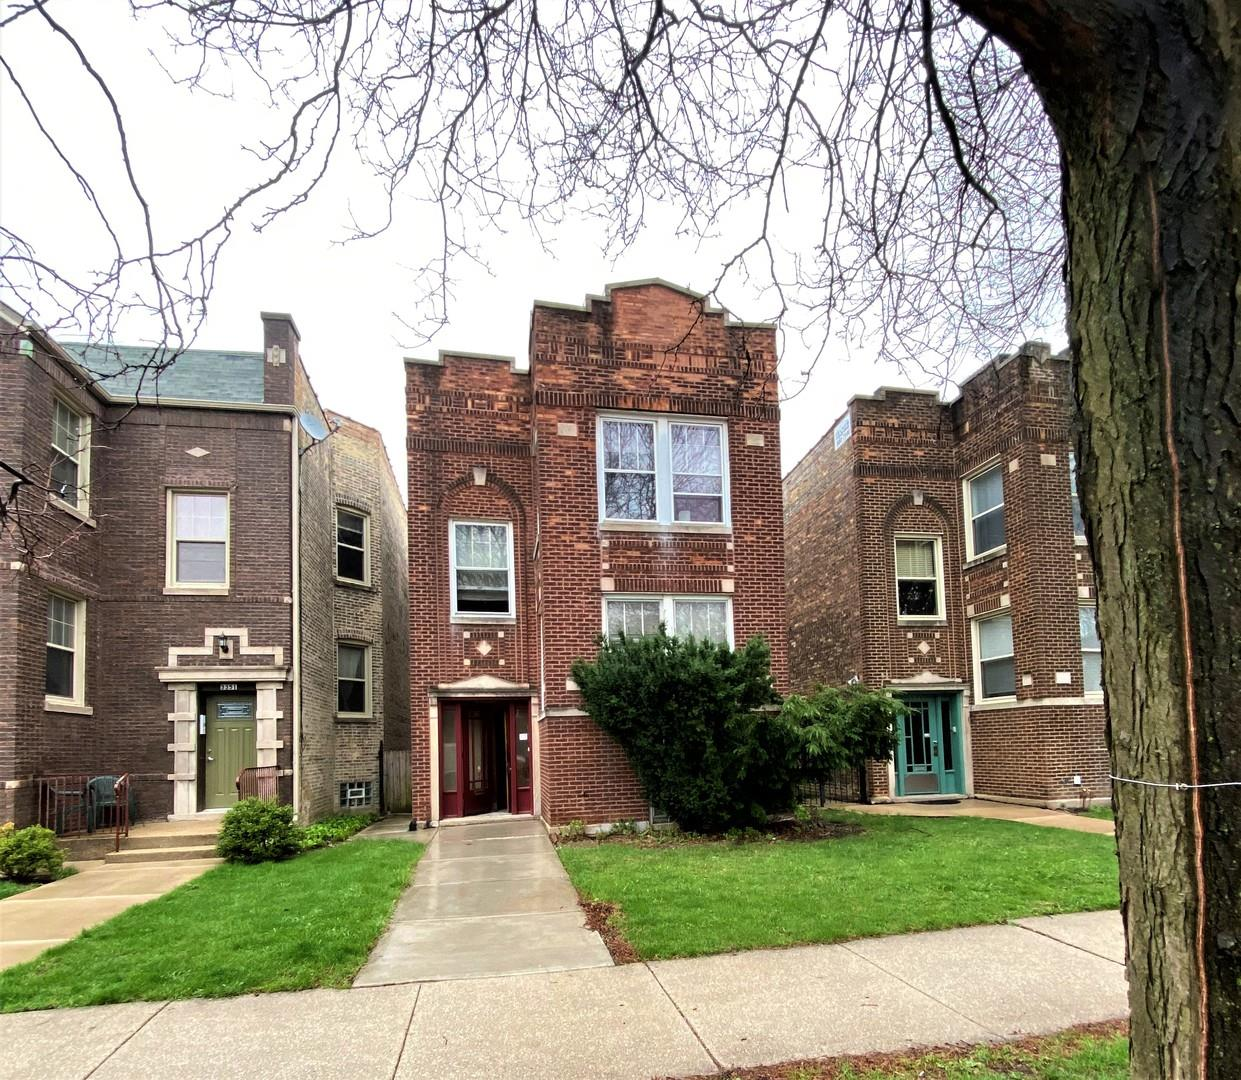 3349 N SPRINGFIELD Avenue, Chicago, IL 60618 - #: 11059134